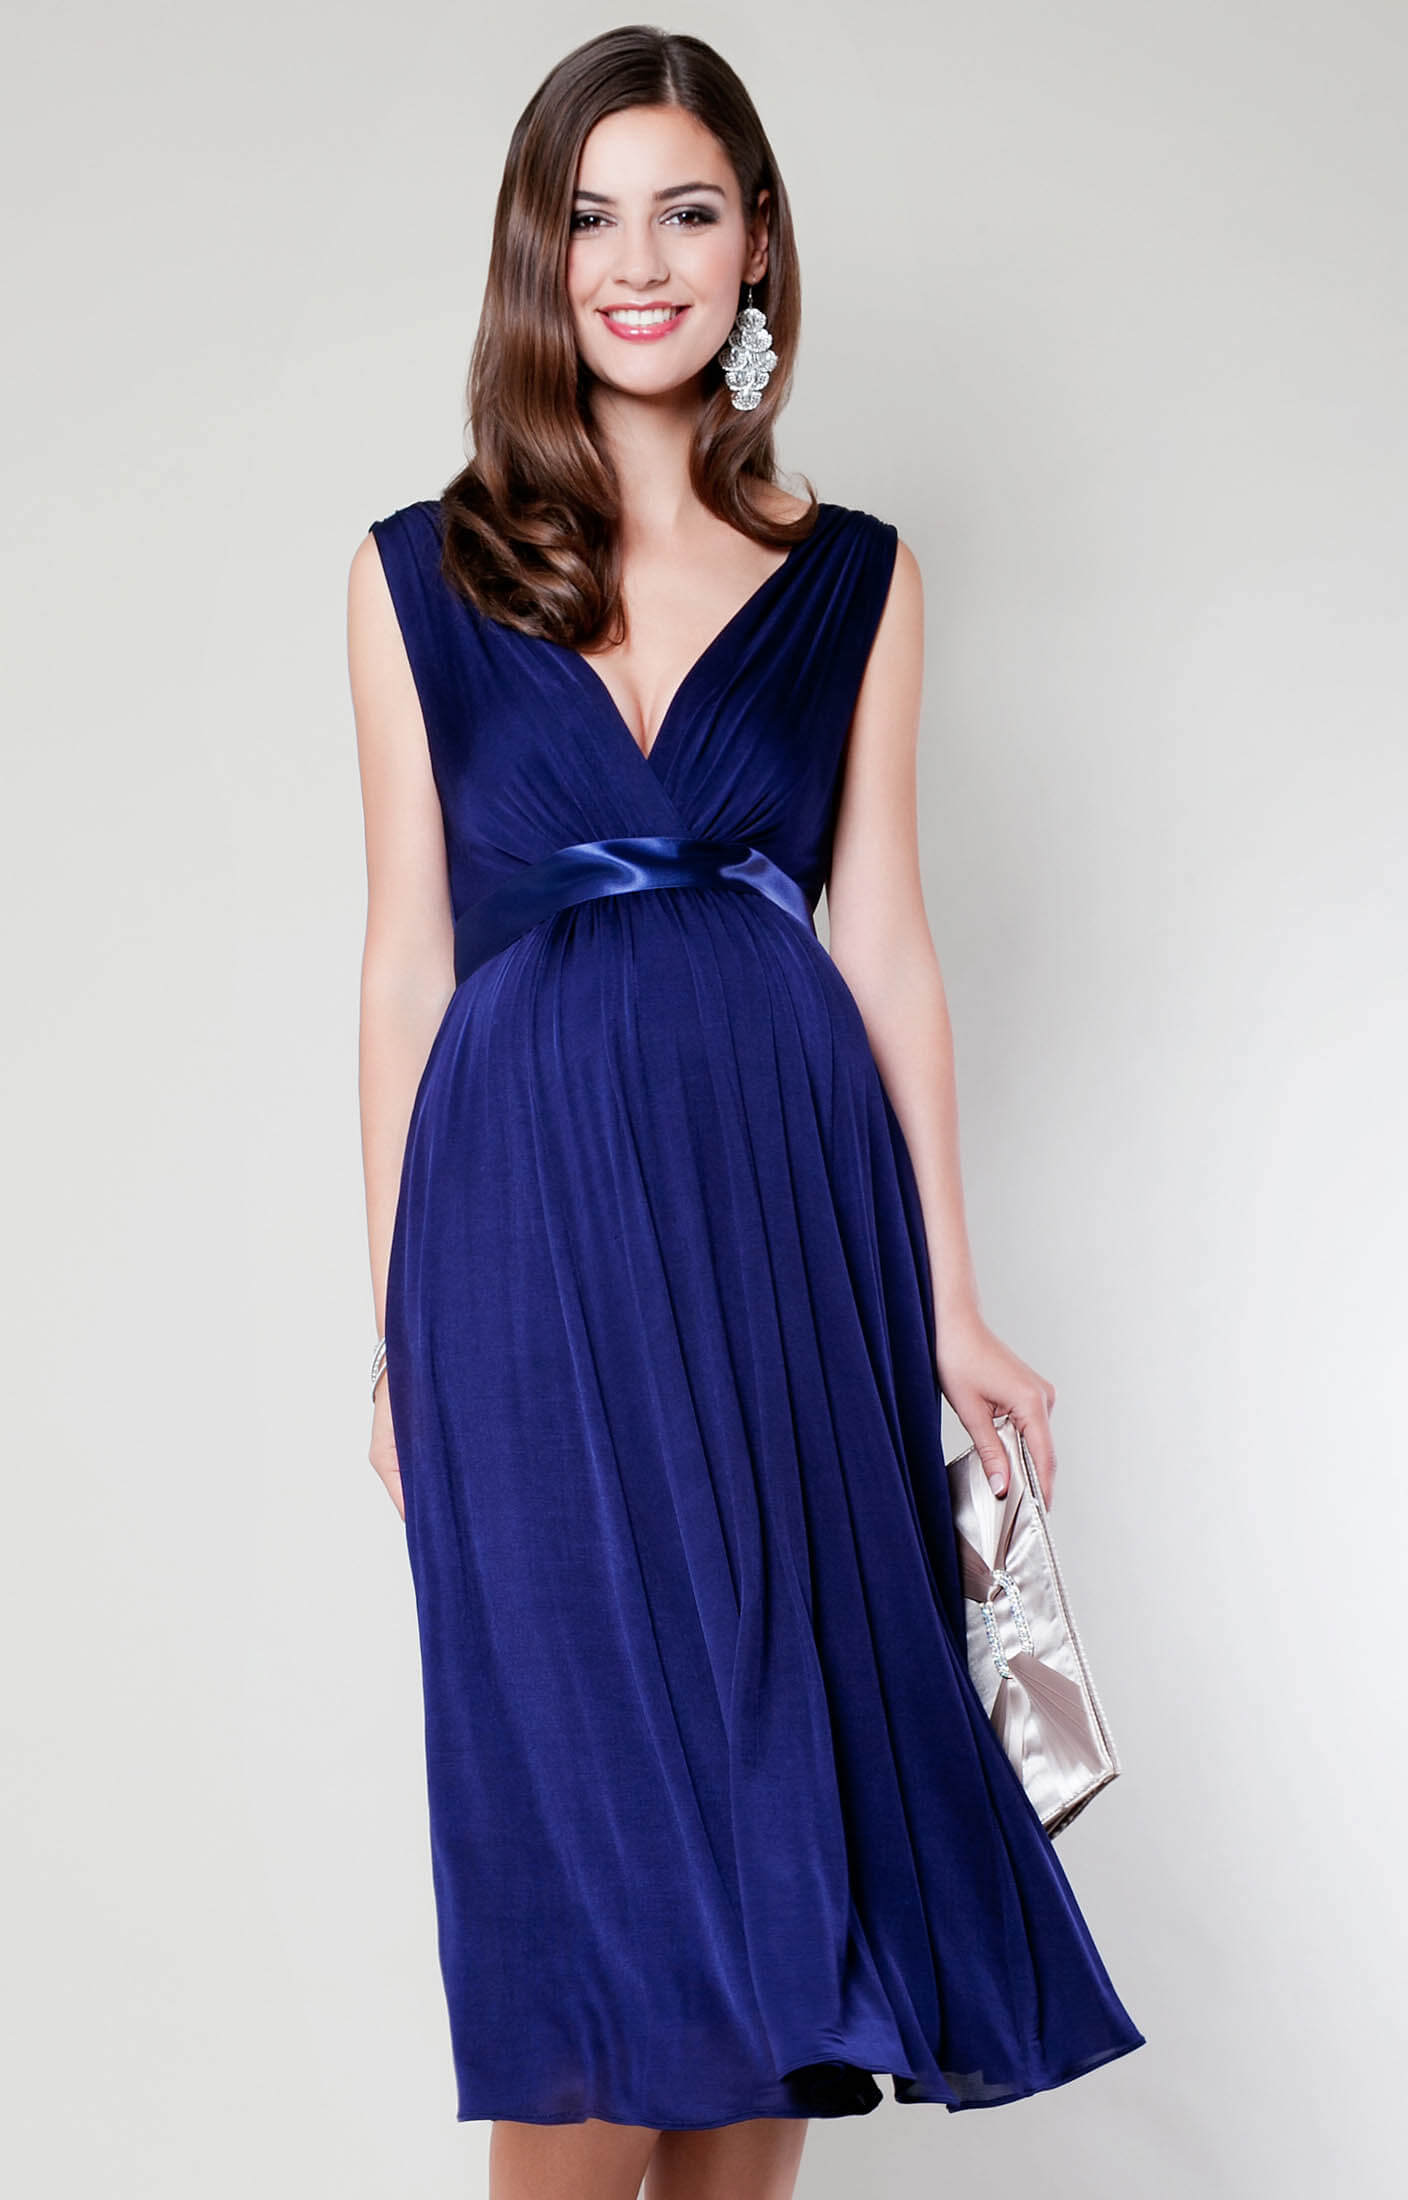 Anastasia Maternity Dress Short Eclipse Blue Maternity Wedding Dresses Evening Wear And